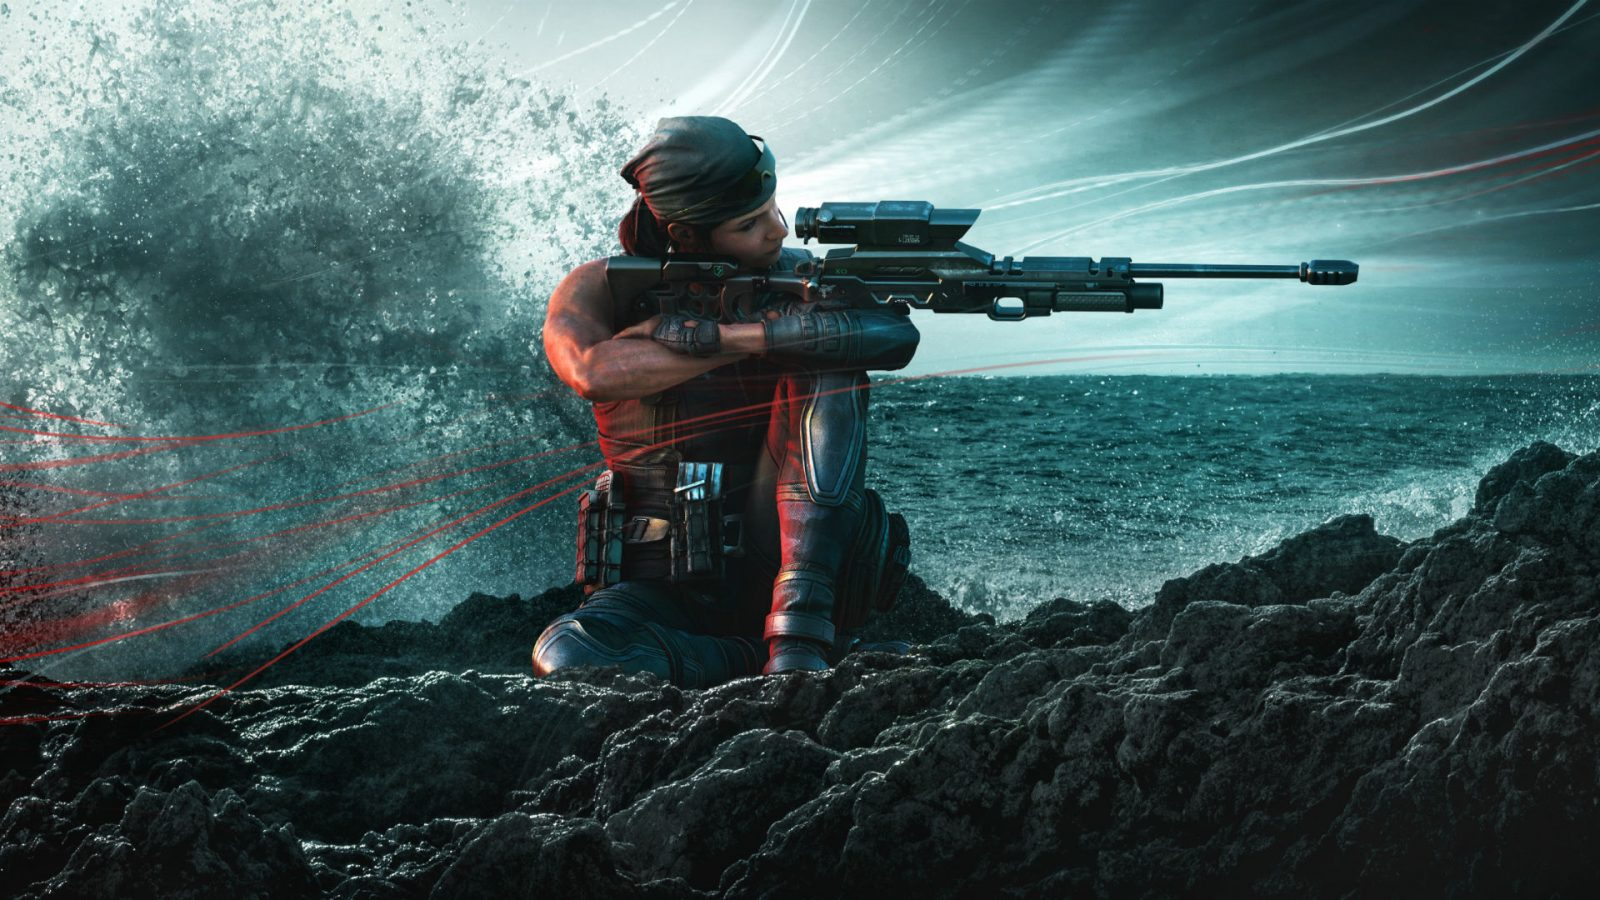 Rainbow Six Siege's new sniper rifle is already proving controversial among pros